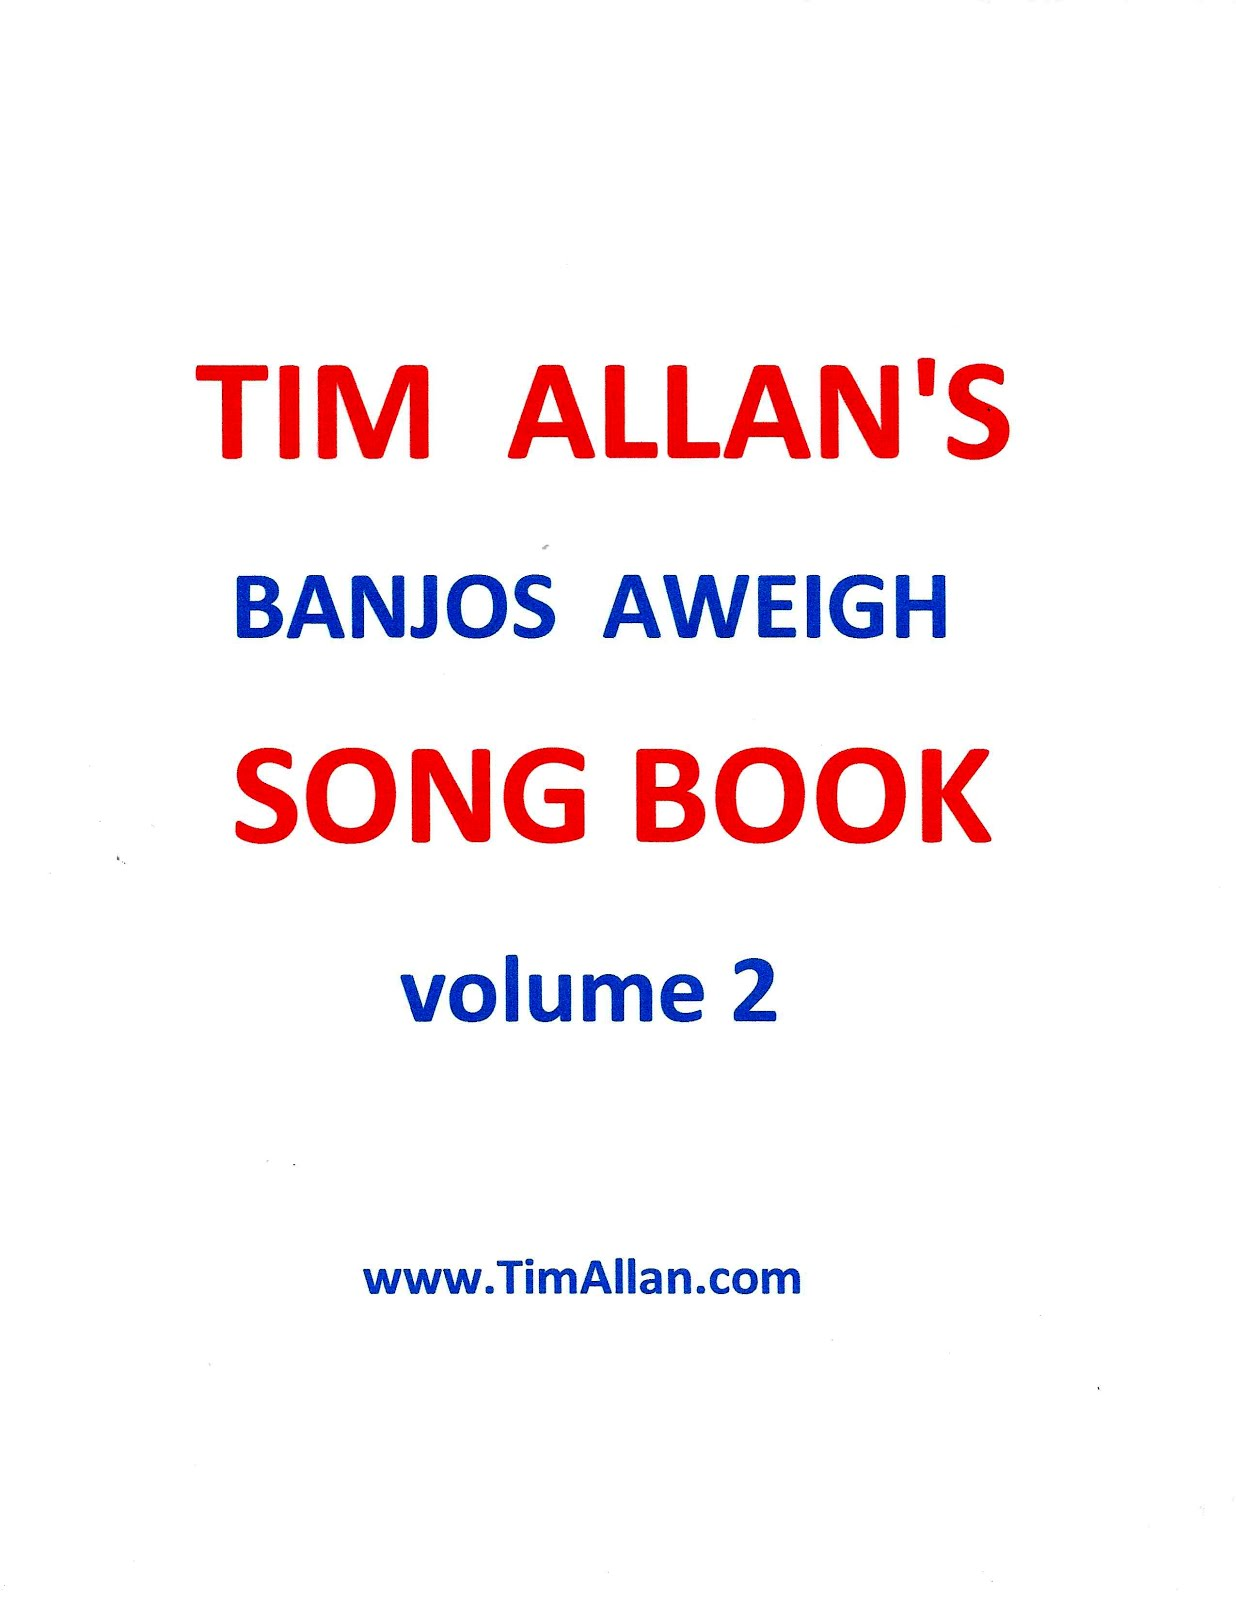 Tim Allan's BANJOS AWEIGH SONG BOOK Volume 2